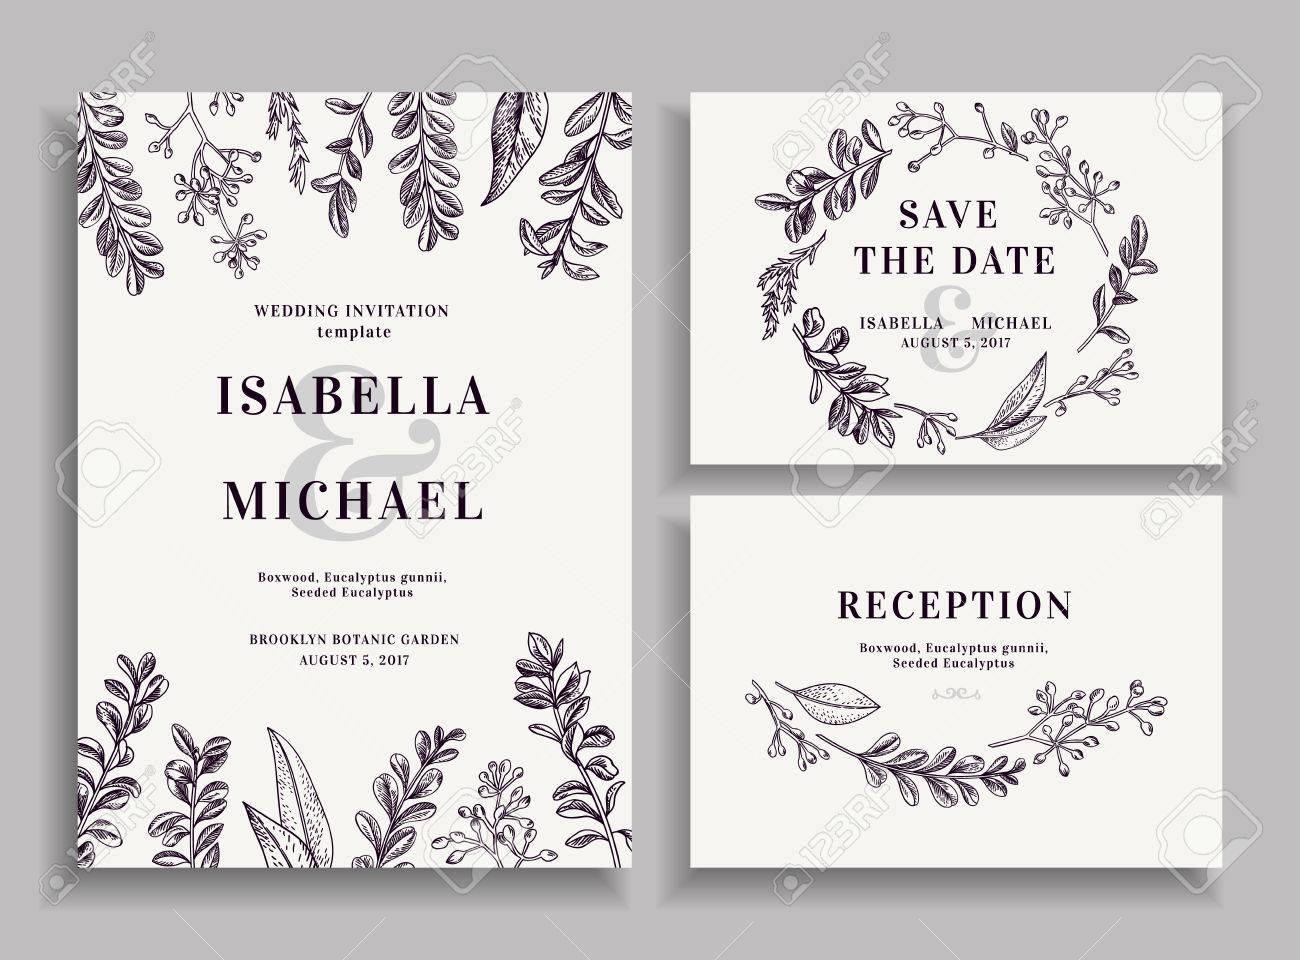 Vintage wedding set with greenery. Wedding invitation, save the date, reception card. - 63418922